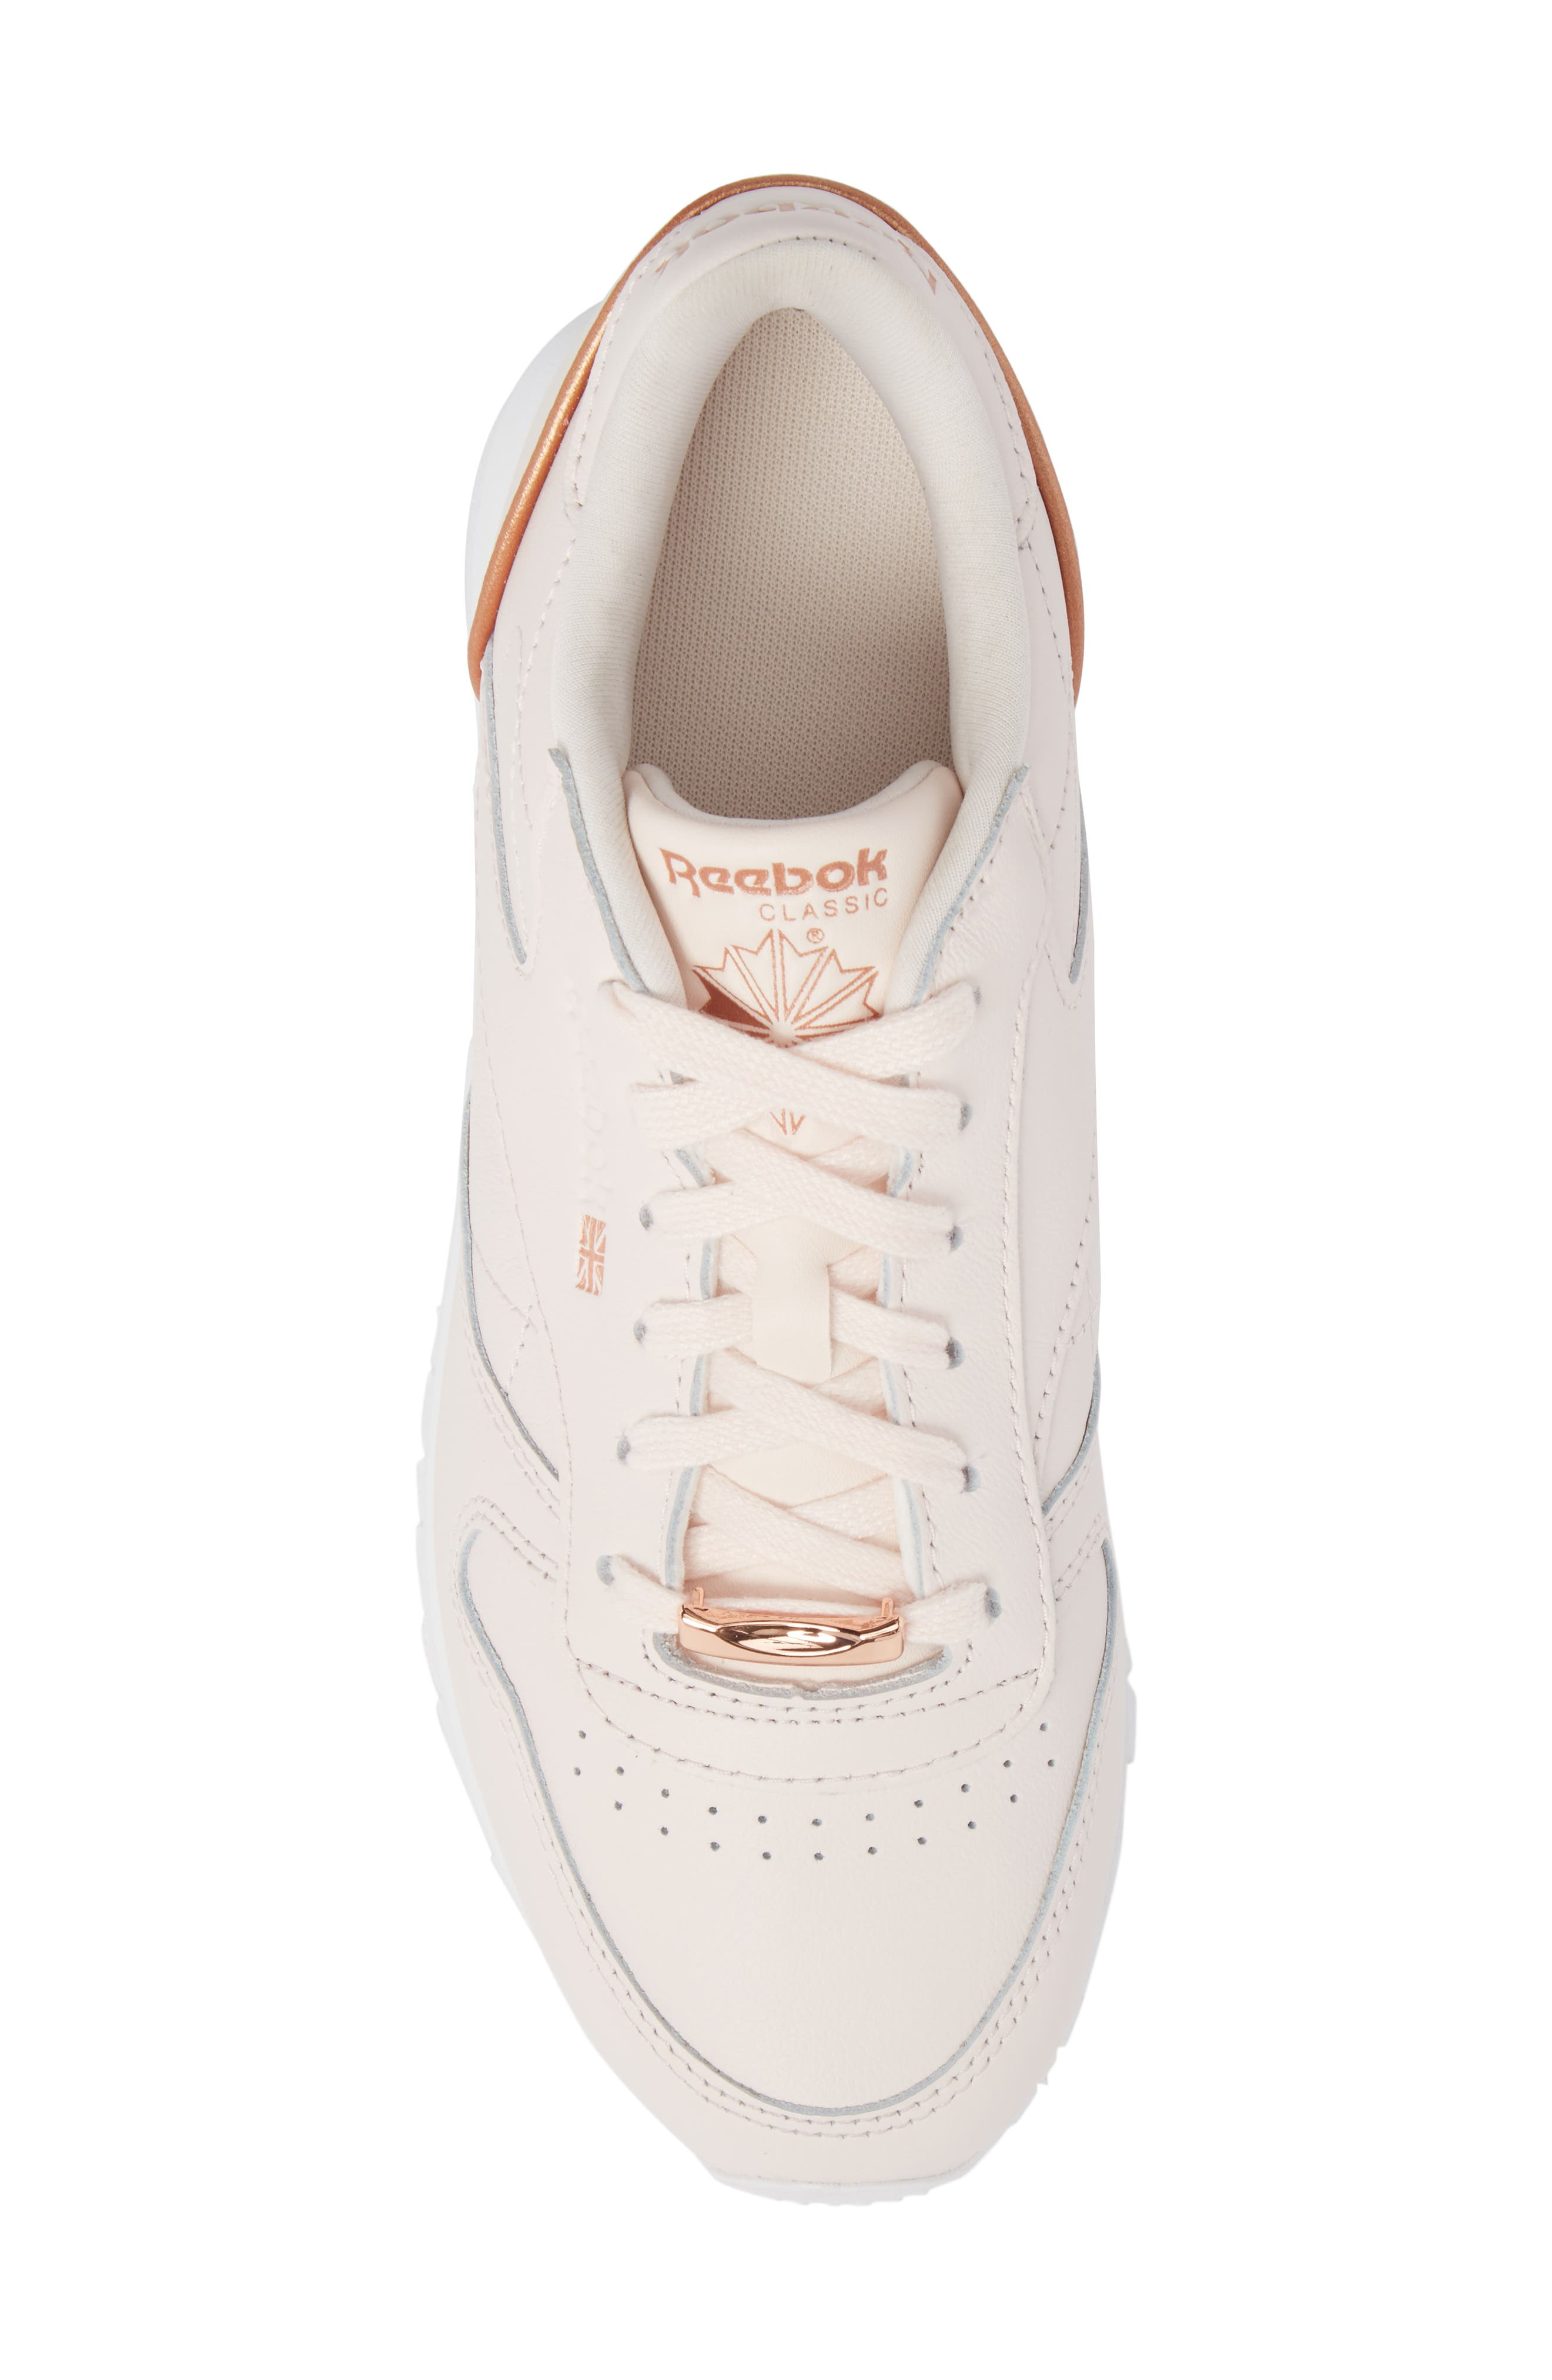 Classic Leather HW Sneaker,                             Alternate thumbnail 5, color,                             Pale Pink/ White/ Rose Gold